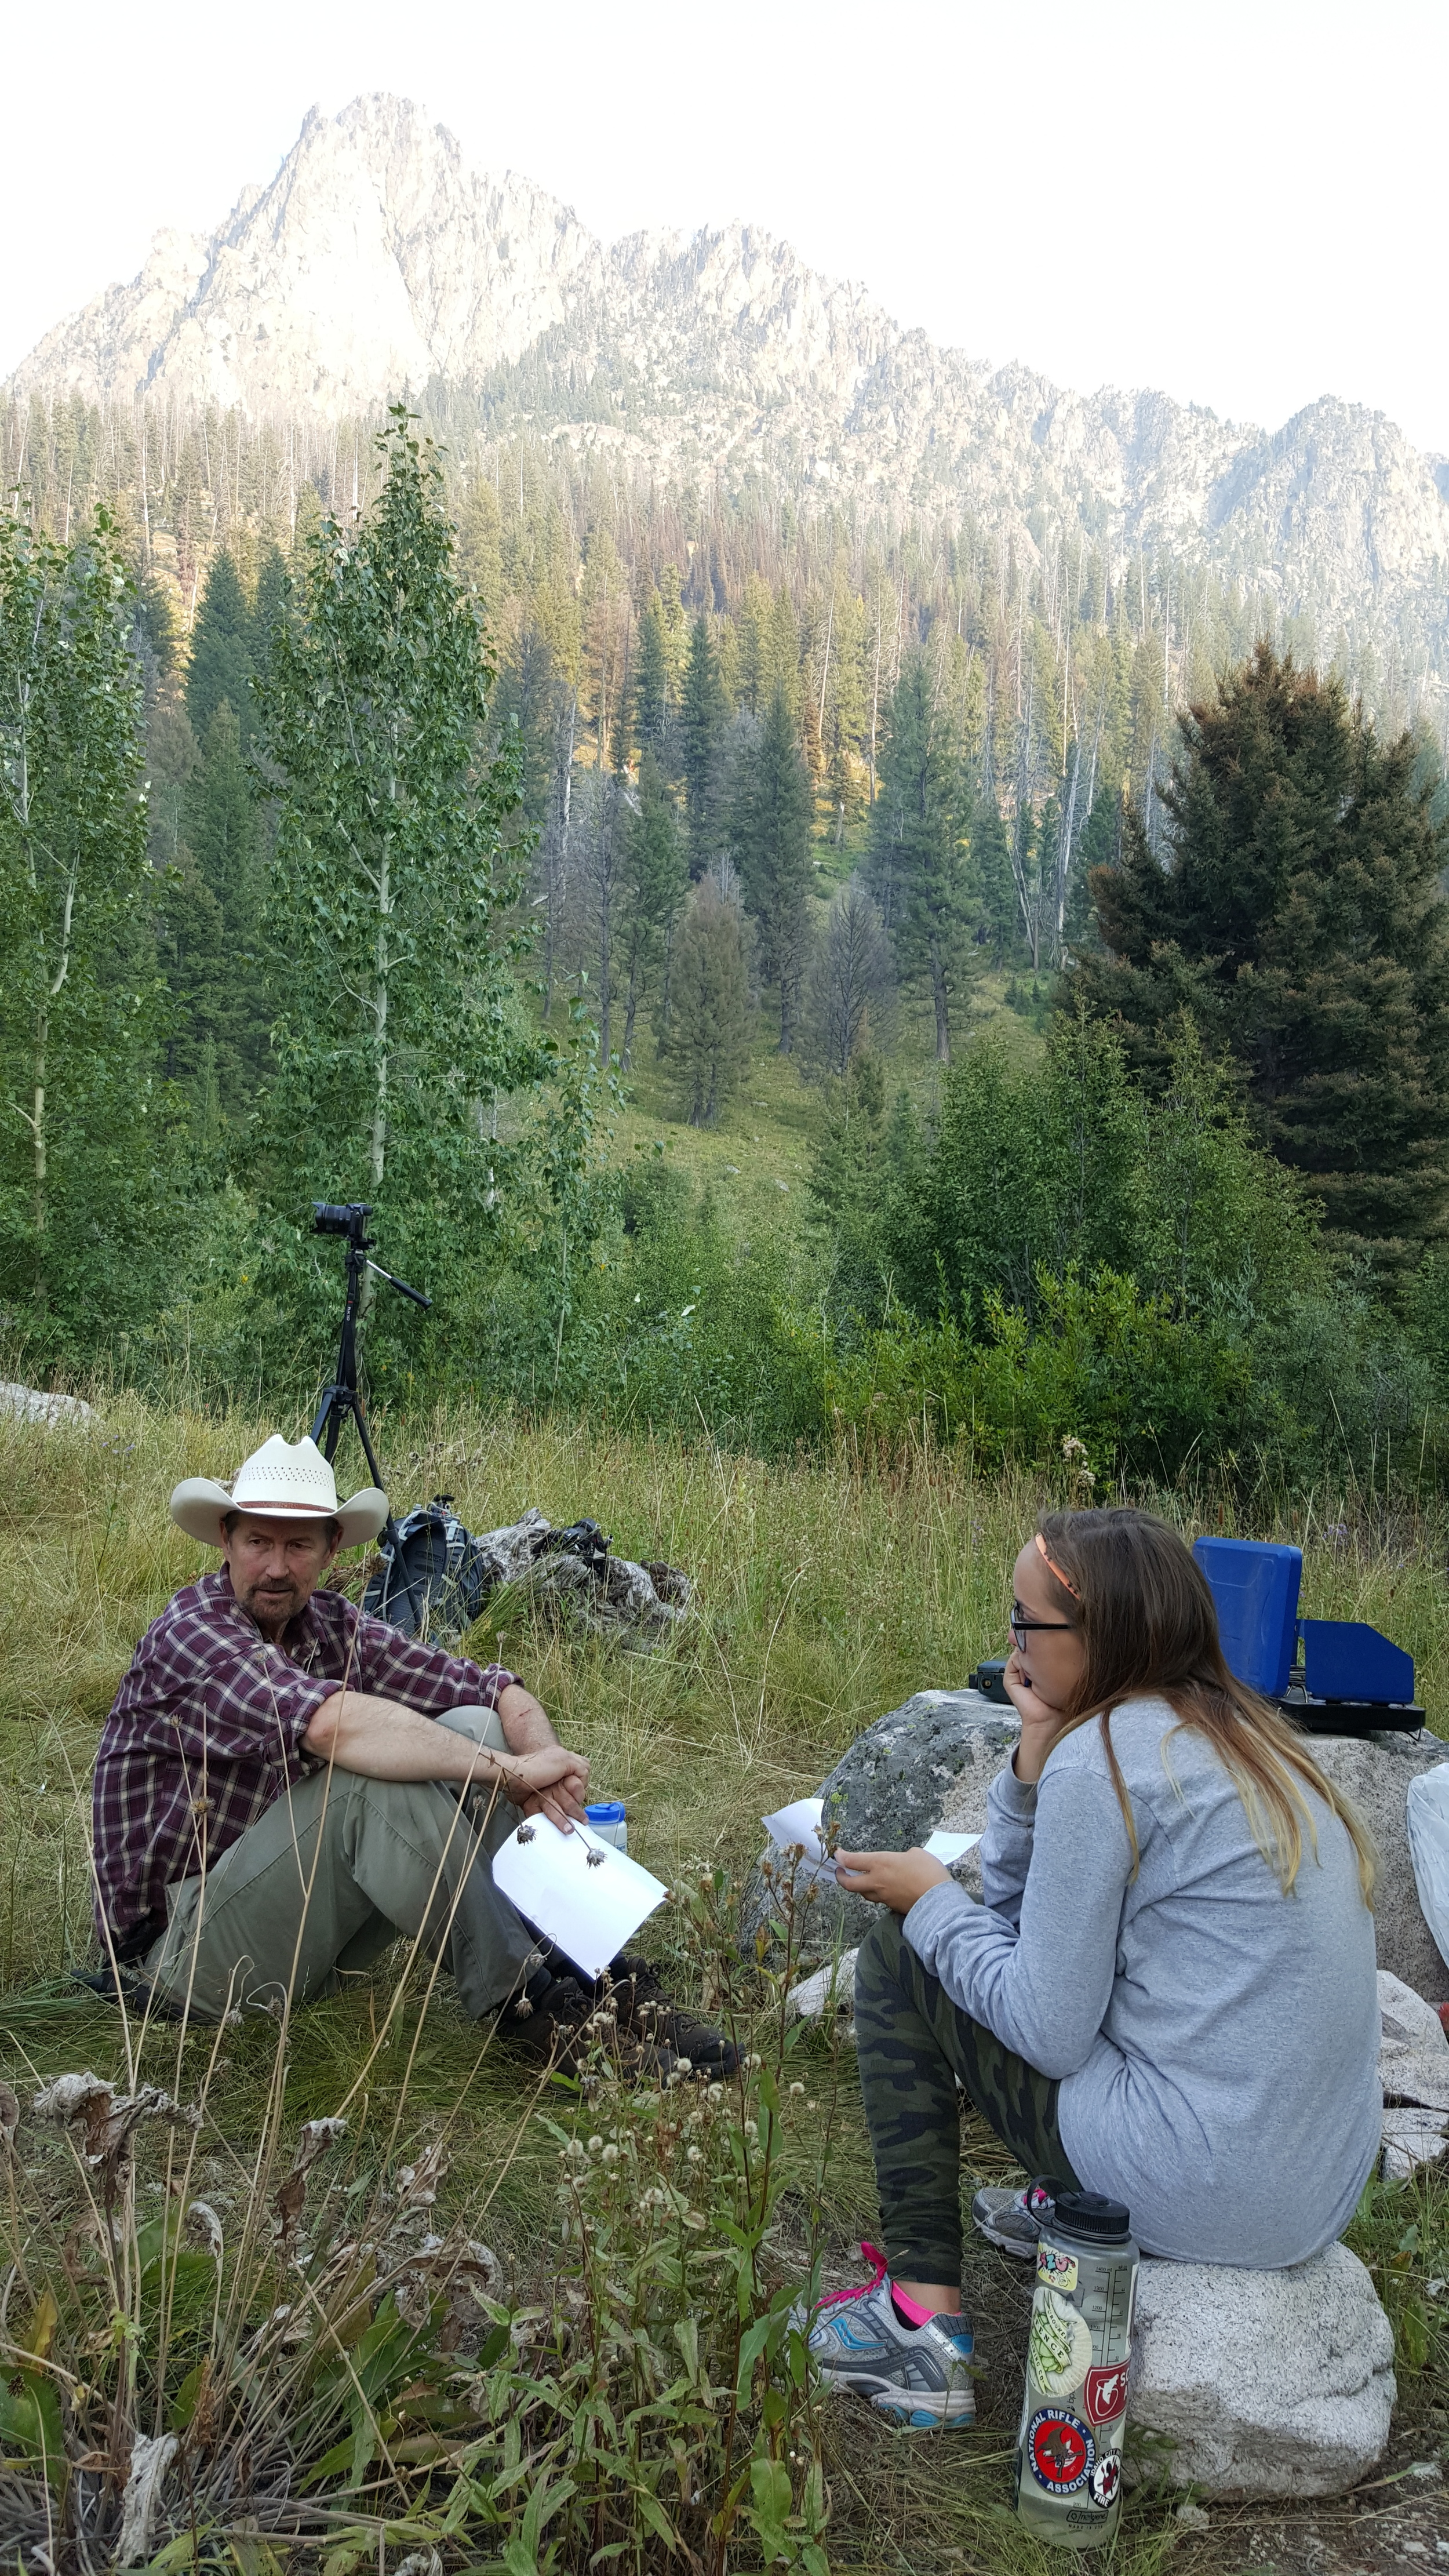 """Outdoor Idaho host Bruce Reichert takes a break in the Sawtooth Mountains near the headwaters of the Boise River during filming of """"Idaho's Headwaters"""" in August 2015. Photo by Greg Stahl."""